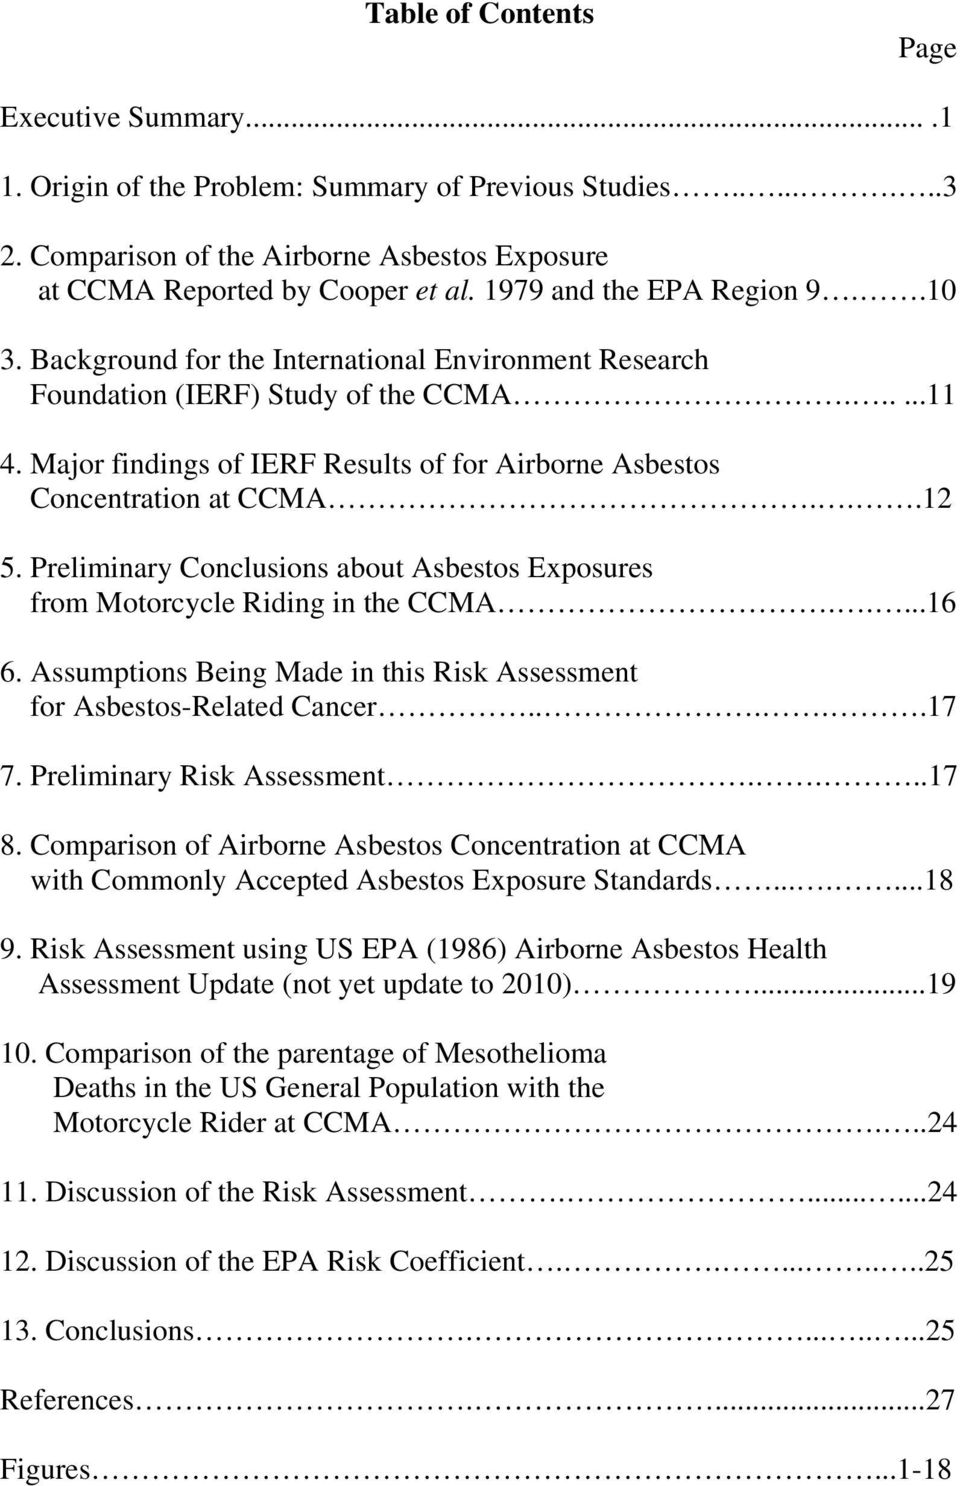 Major findings of IERF Results of for Airborne Asbestos Concentration at CCMA...12 5. Preliminary Conclusions about Asbestos Exposures from Motorcycle Riding in the CCMA.....16 6.